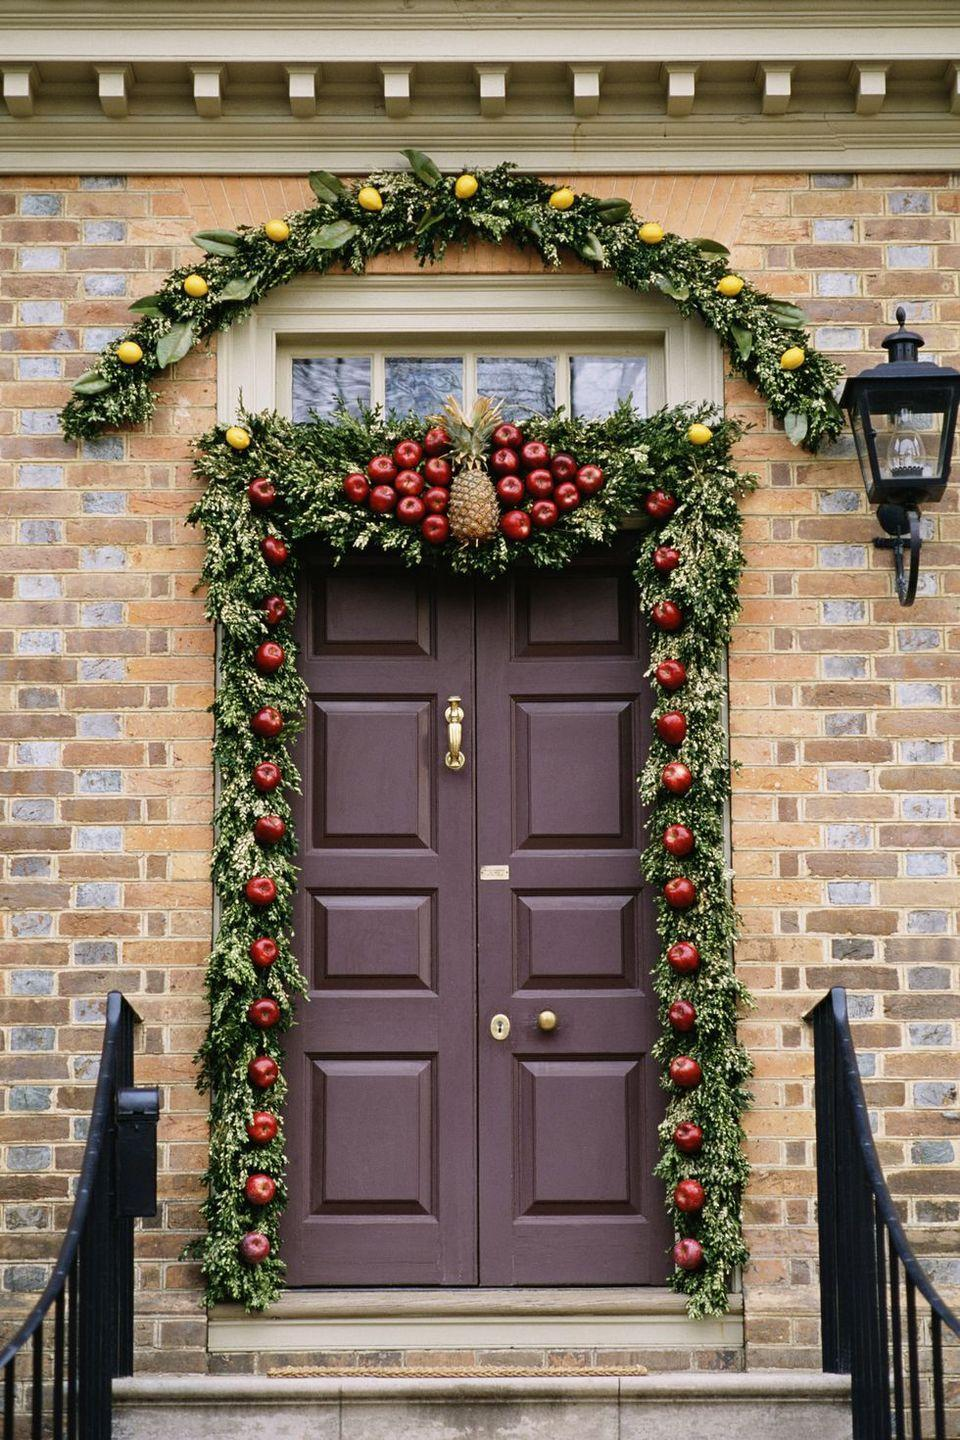 <p>Classic garland is jazzed up with a nontraditional twist, thanks to decorative apples, lemons, and even a welcoming pineapple.<br></p>